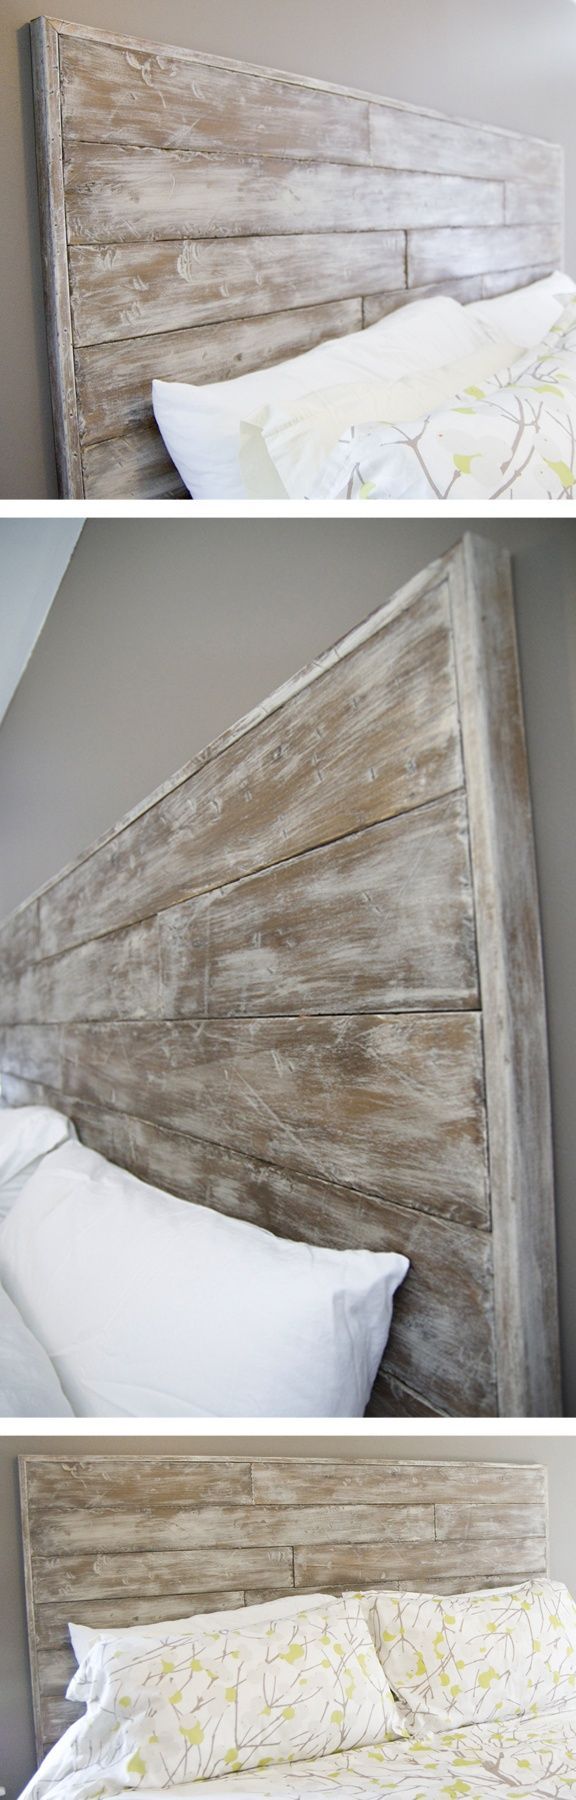 576 1 800 pixels for How to make a wood pallet headboard